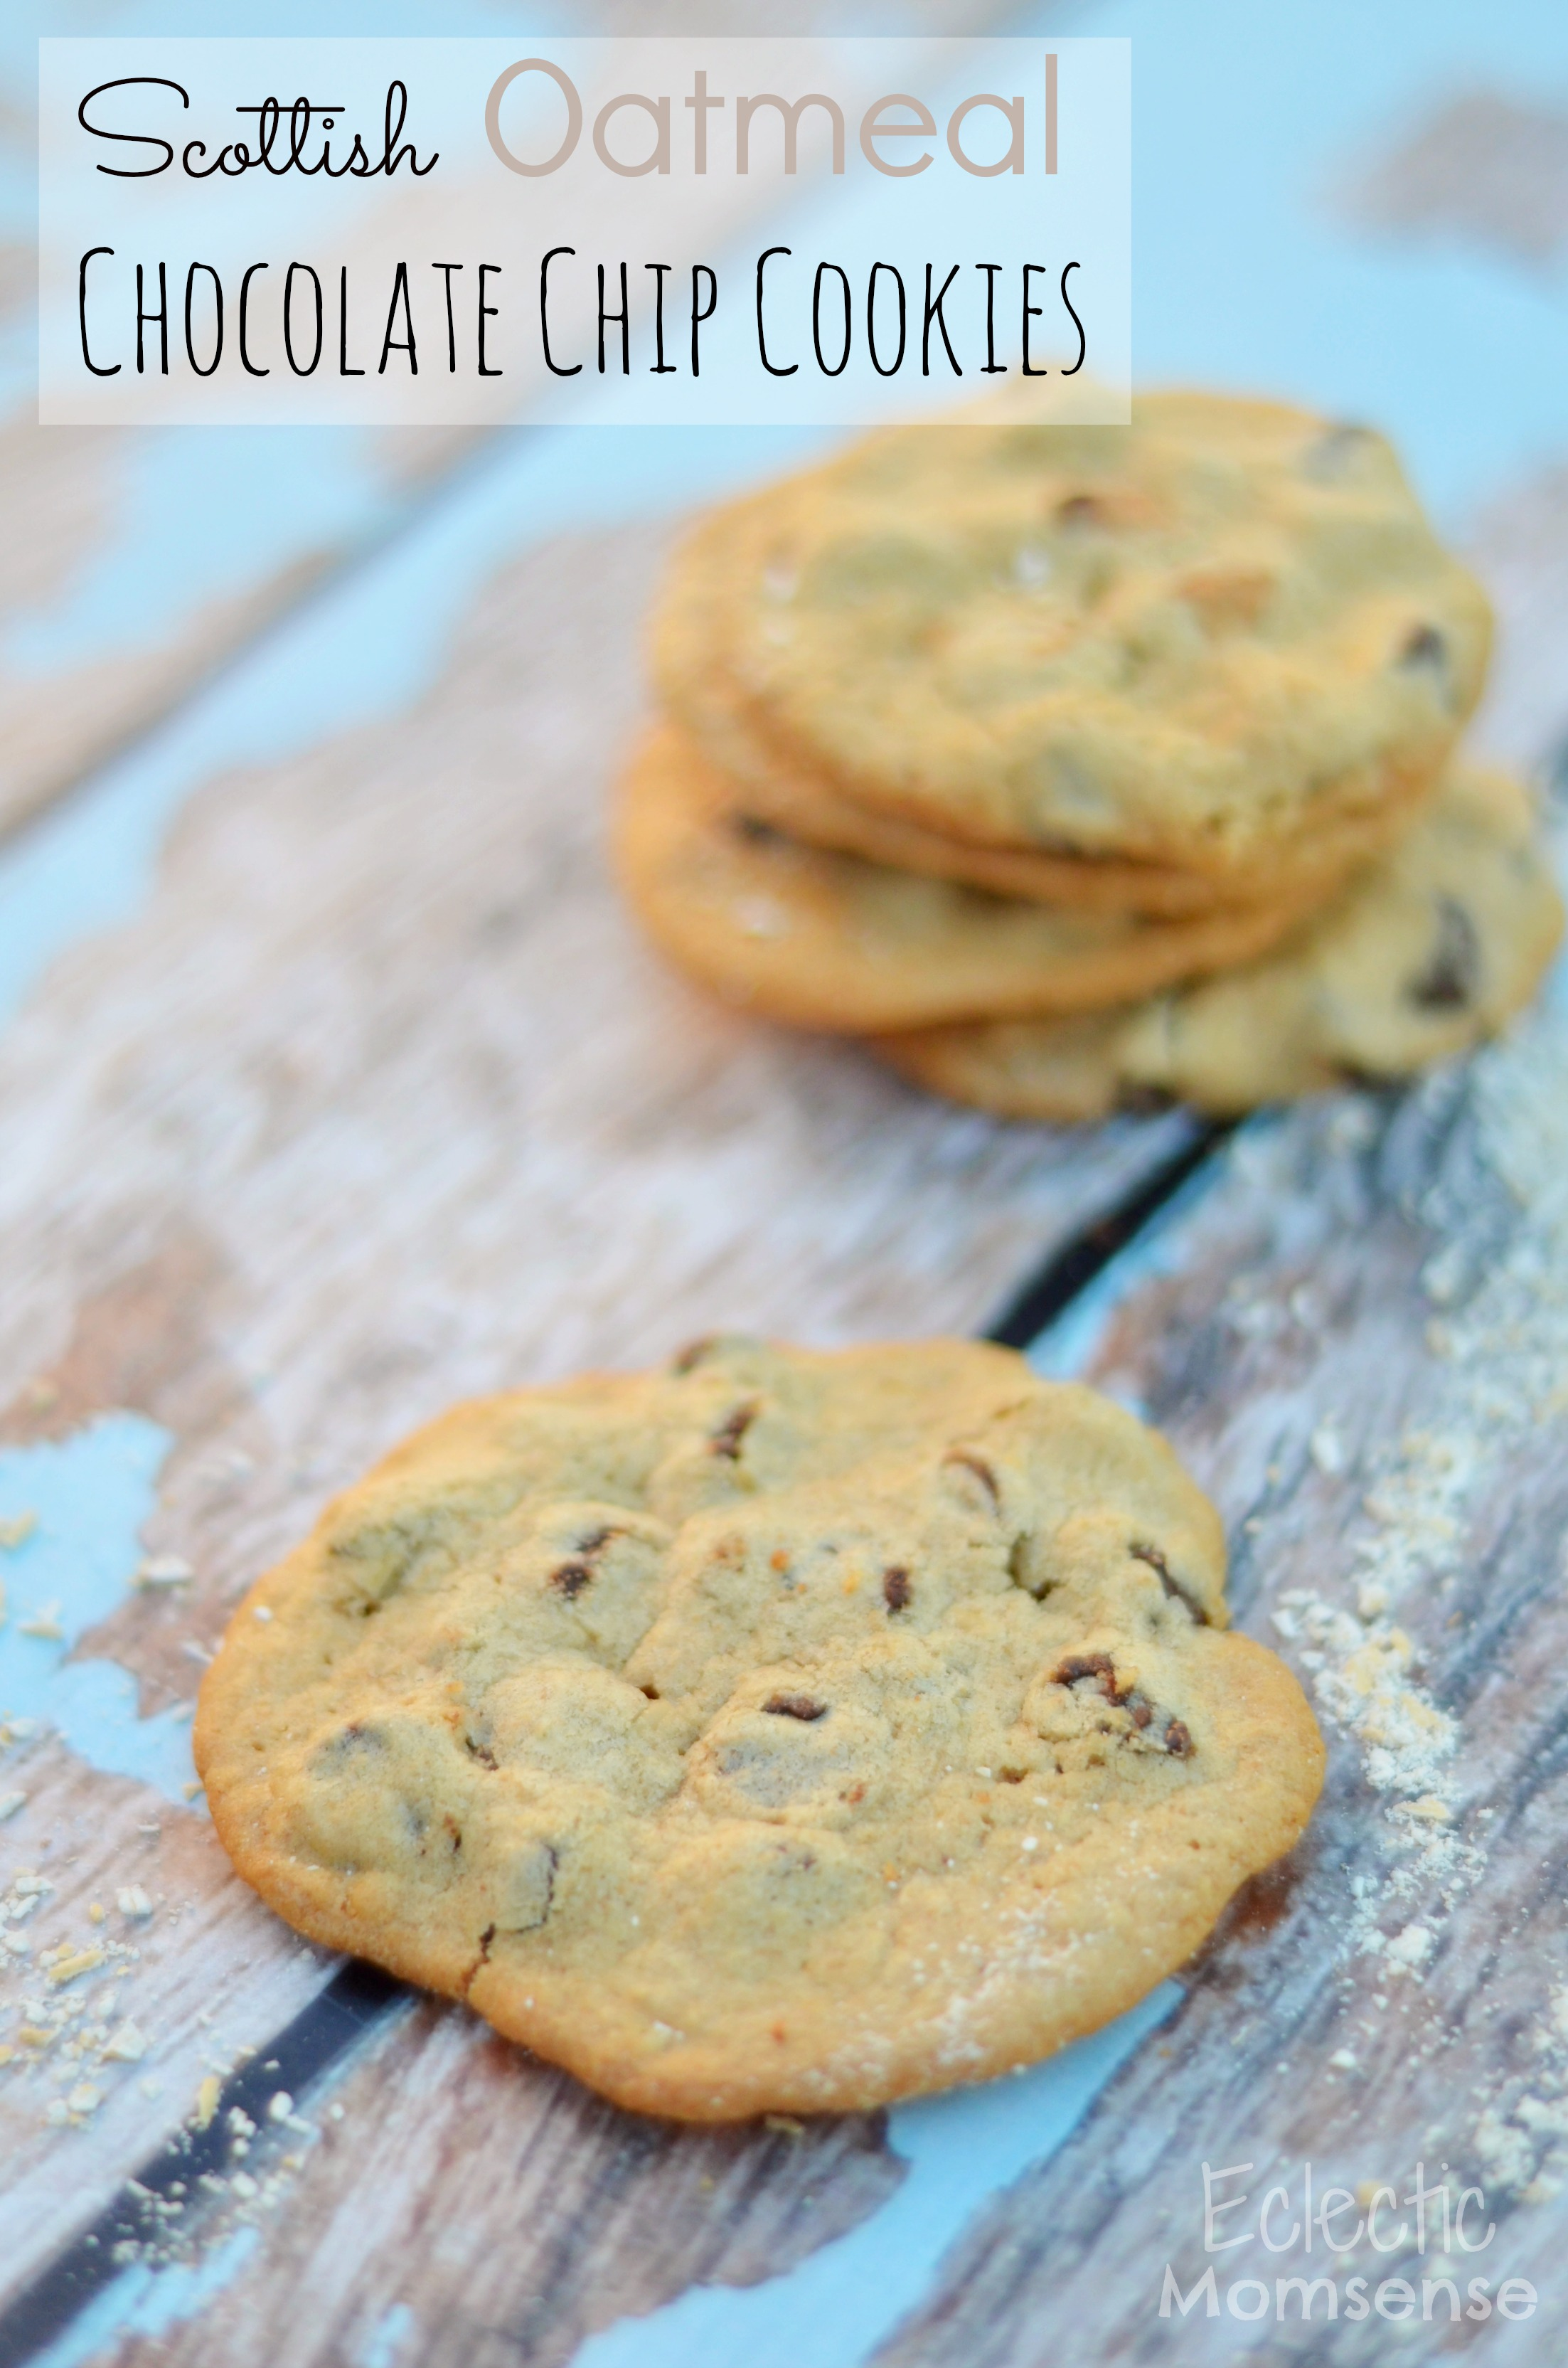 Ultimate Oatmeal Chocolate Chip Cookies - Eclectic Momsense